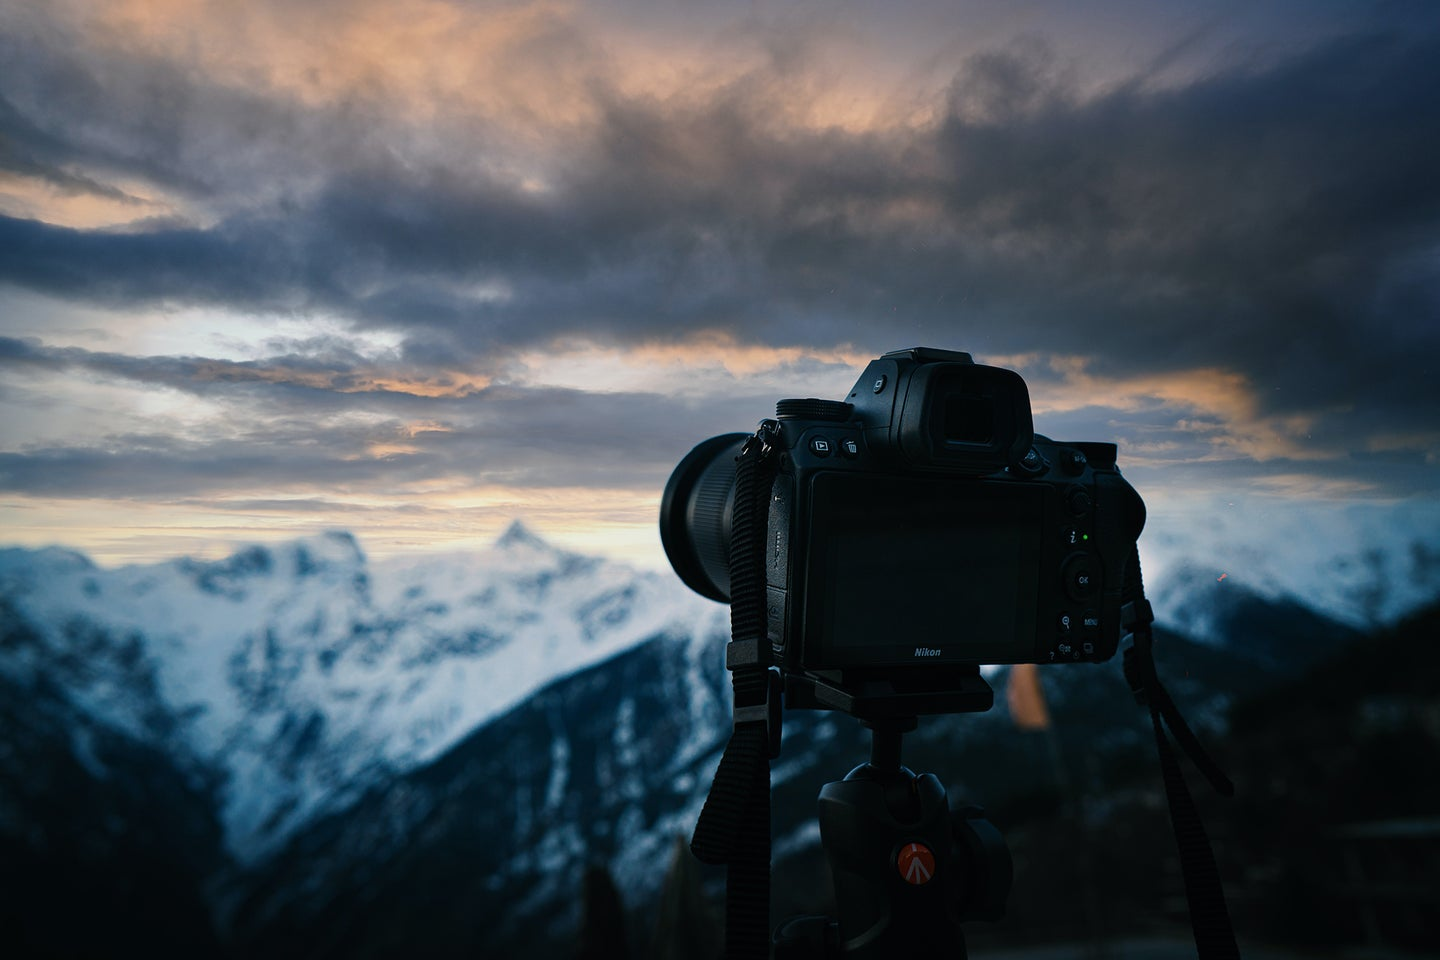 Best full frame camera on a tripod in front of a cloudy sky and snowy mountain